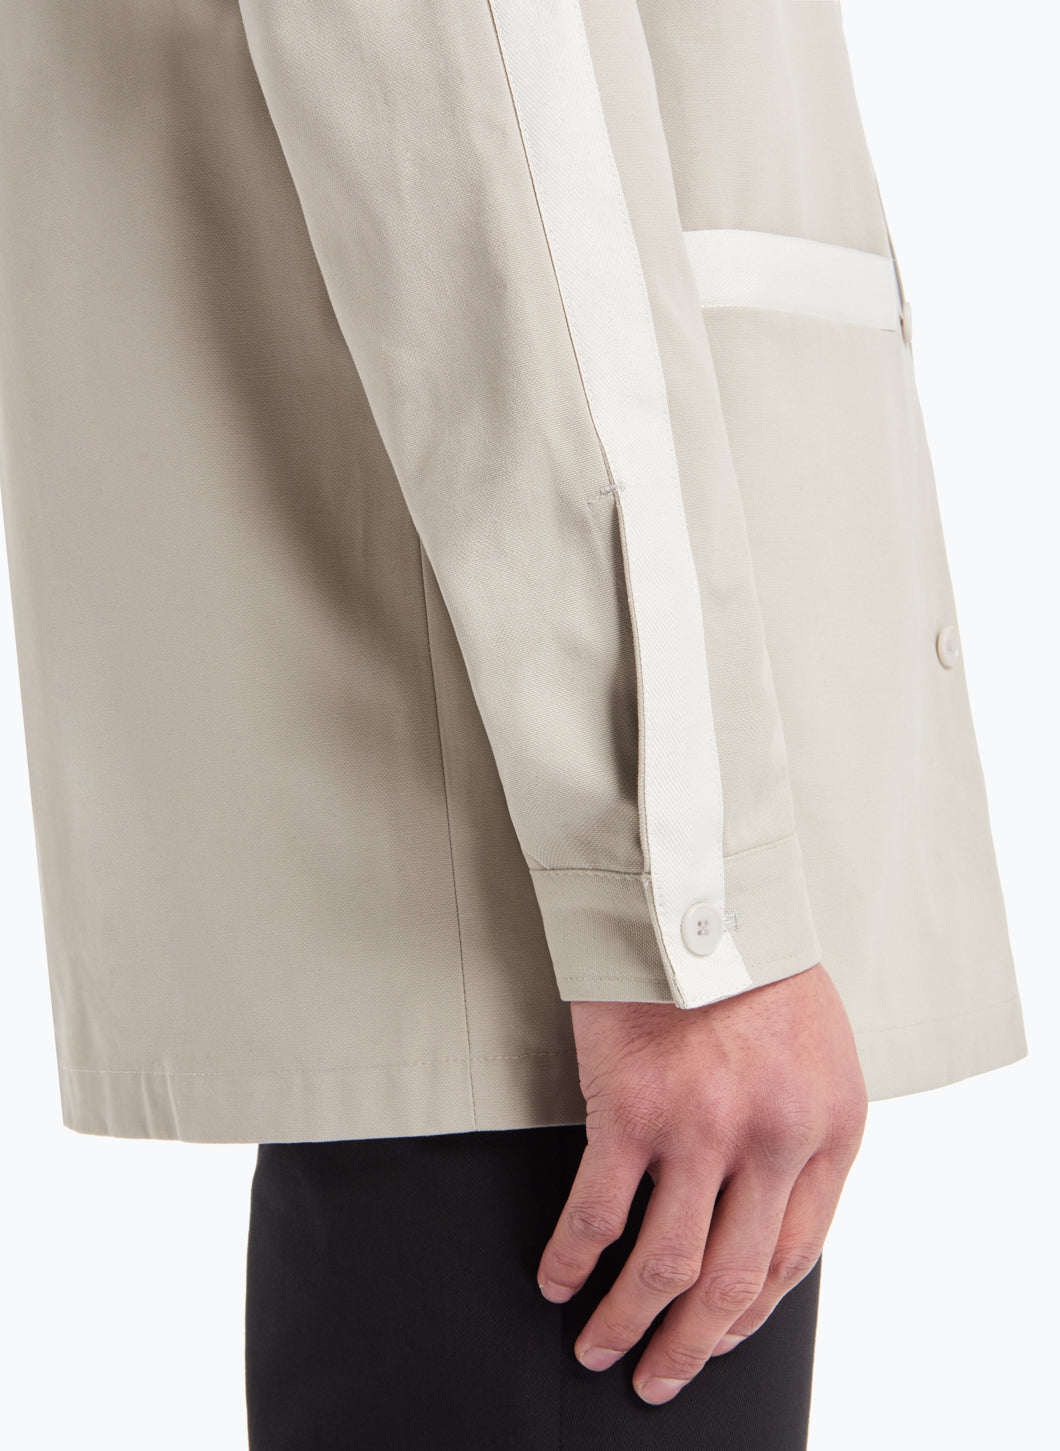 Overshirt with White Trims in Beige Gabardine